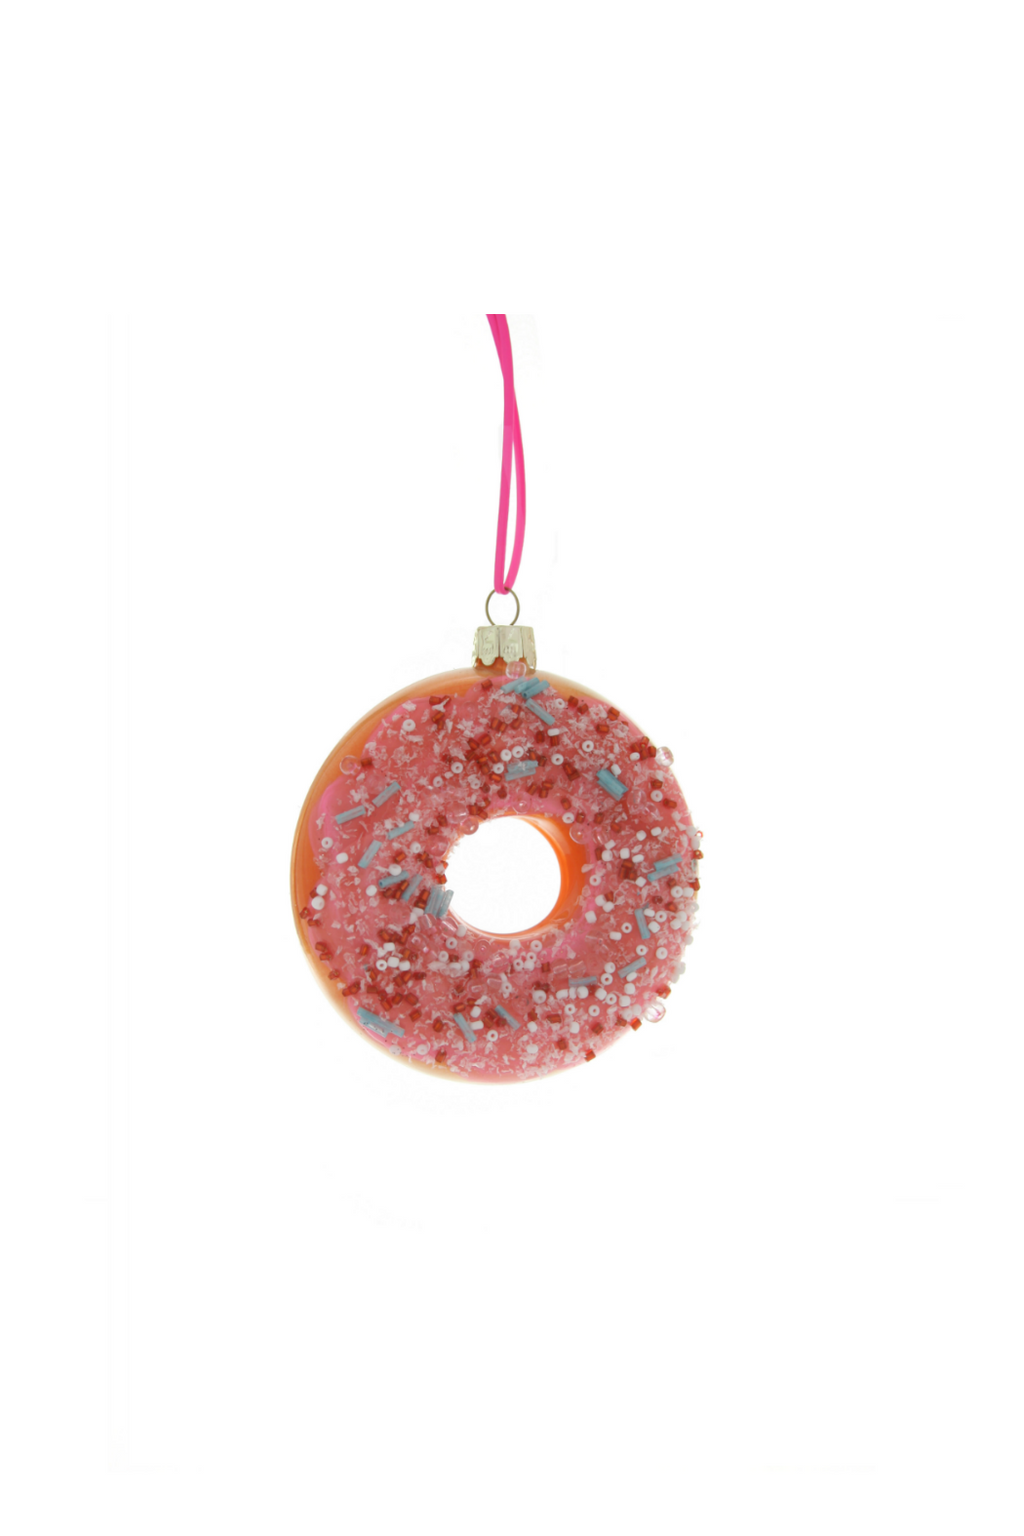 Large Frosted Donut with Sprinkles Ornament